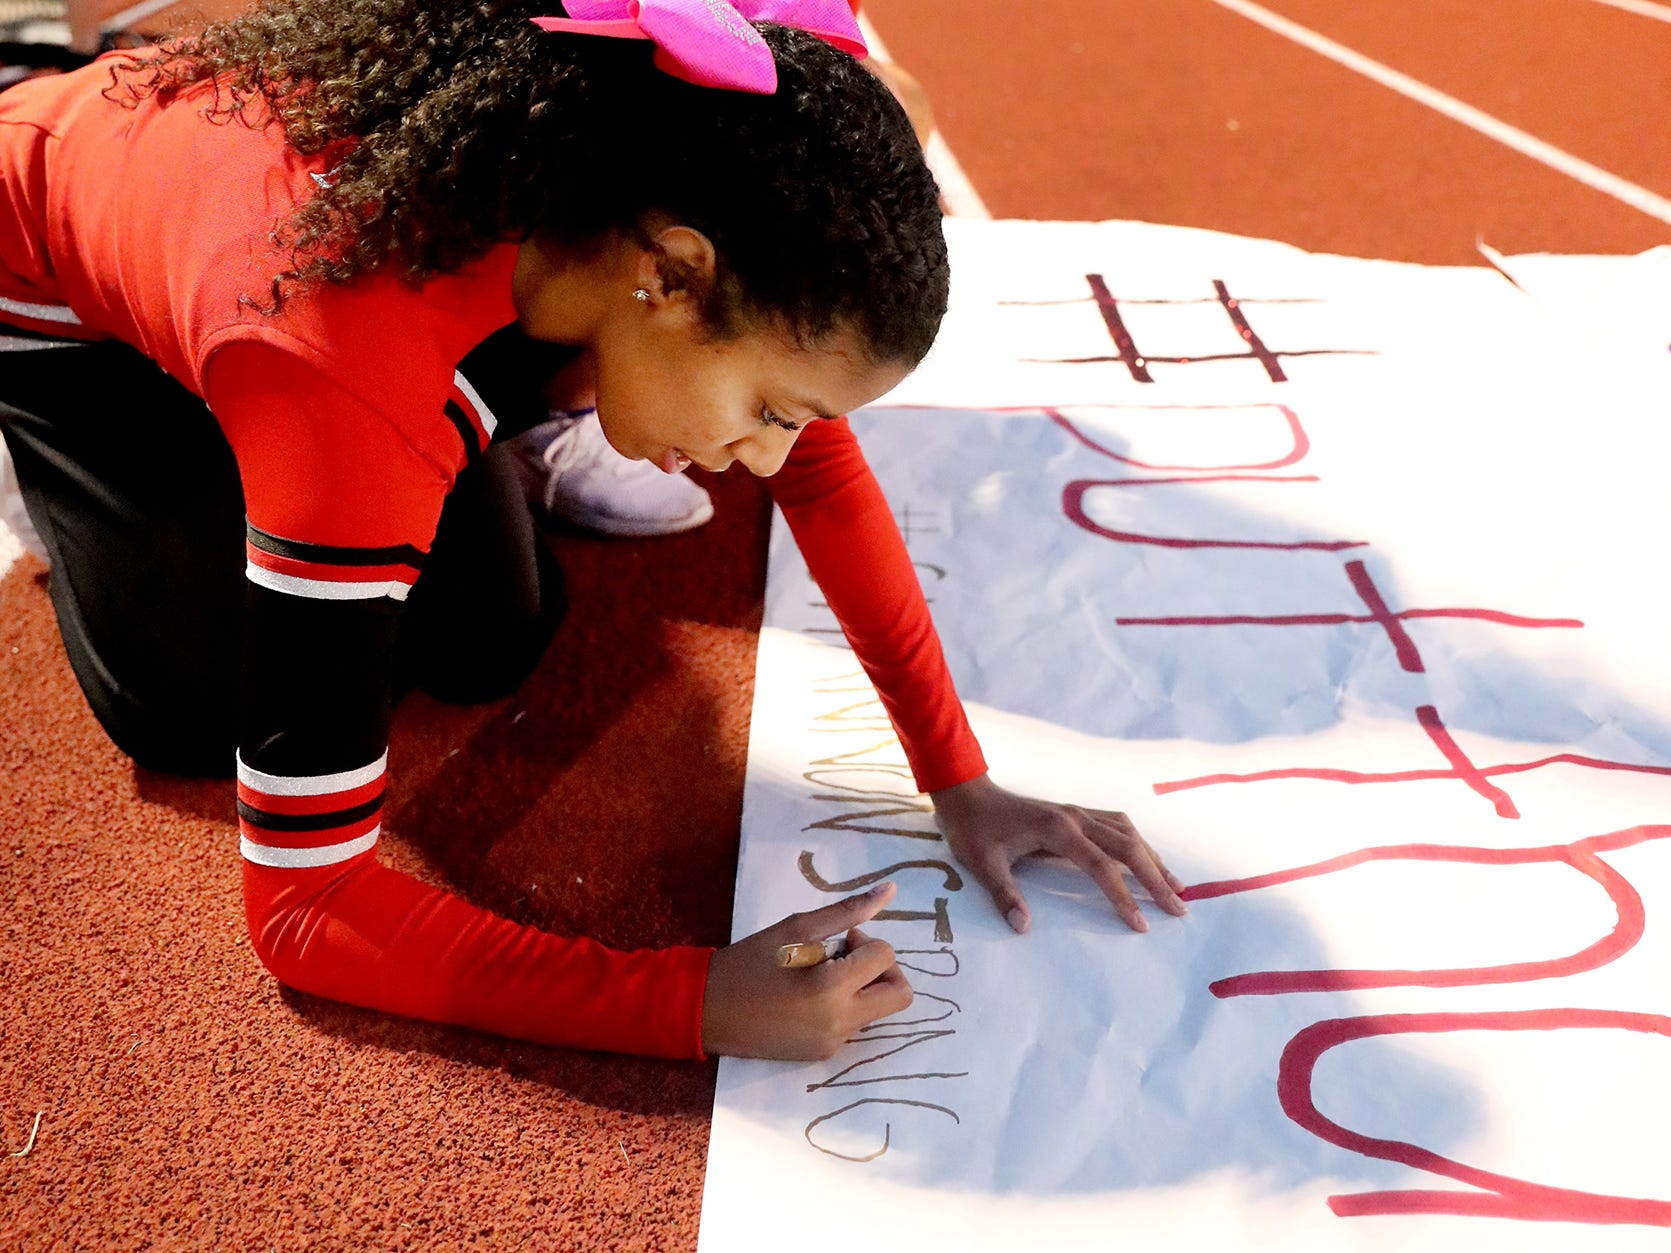 Stewarts Creek senior cheerleaders Jewell Windrow writes #ShannonStrong on their sign in support of the Smyrna Coach Matt Williams' wife who is battling cancer before the game against Smyrna on Friday, Oct. 12, 2018. Senior Creek cheerleader Leanne Ott watches Windrow.